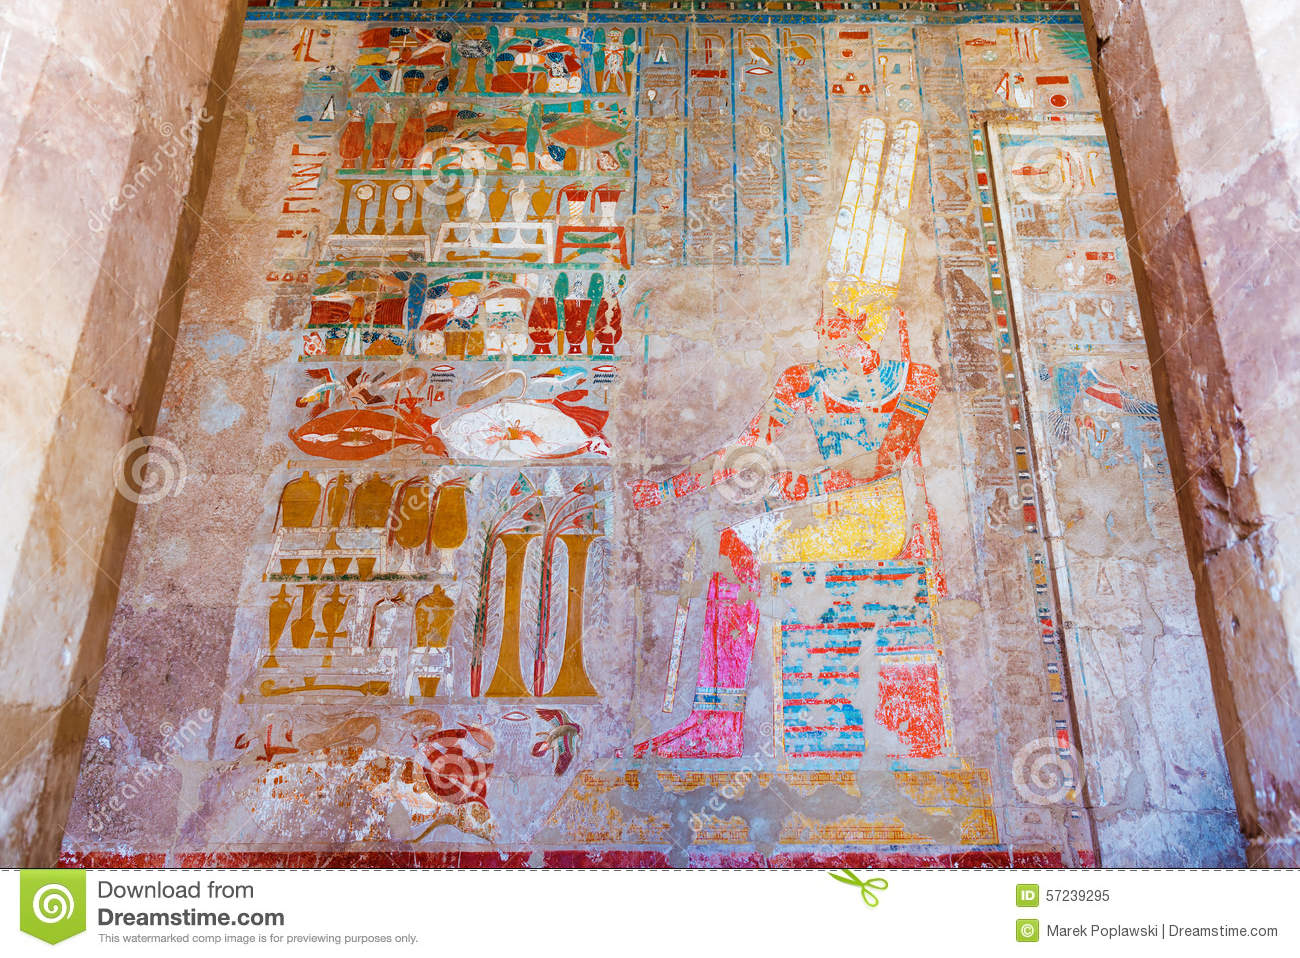 Wall paintings in temple of hatshepsut in egypt stock for Egyptian fresco mural painting